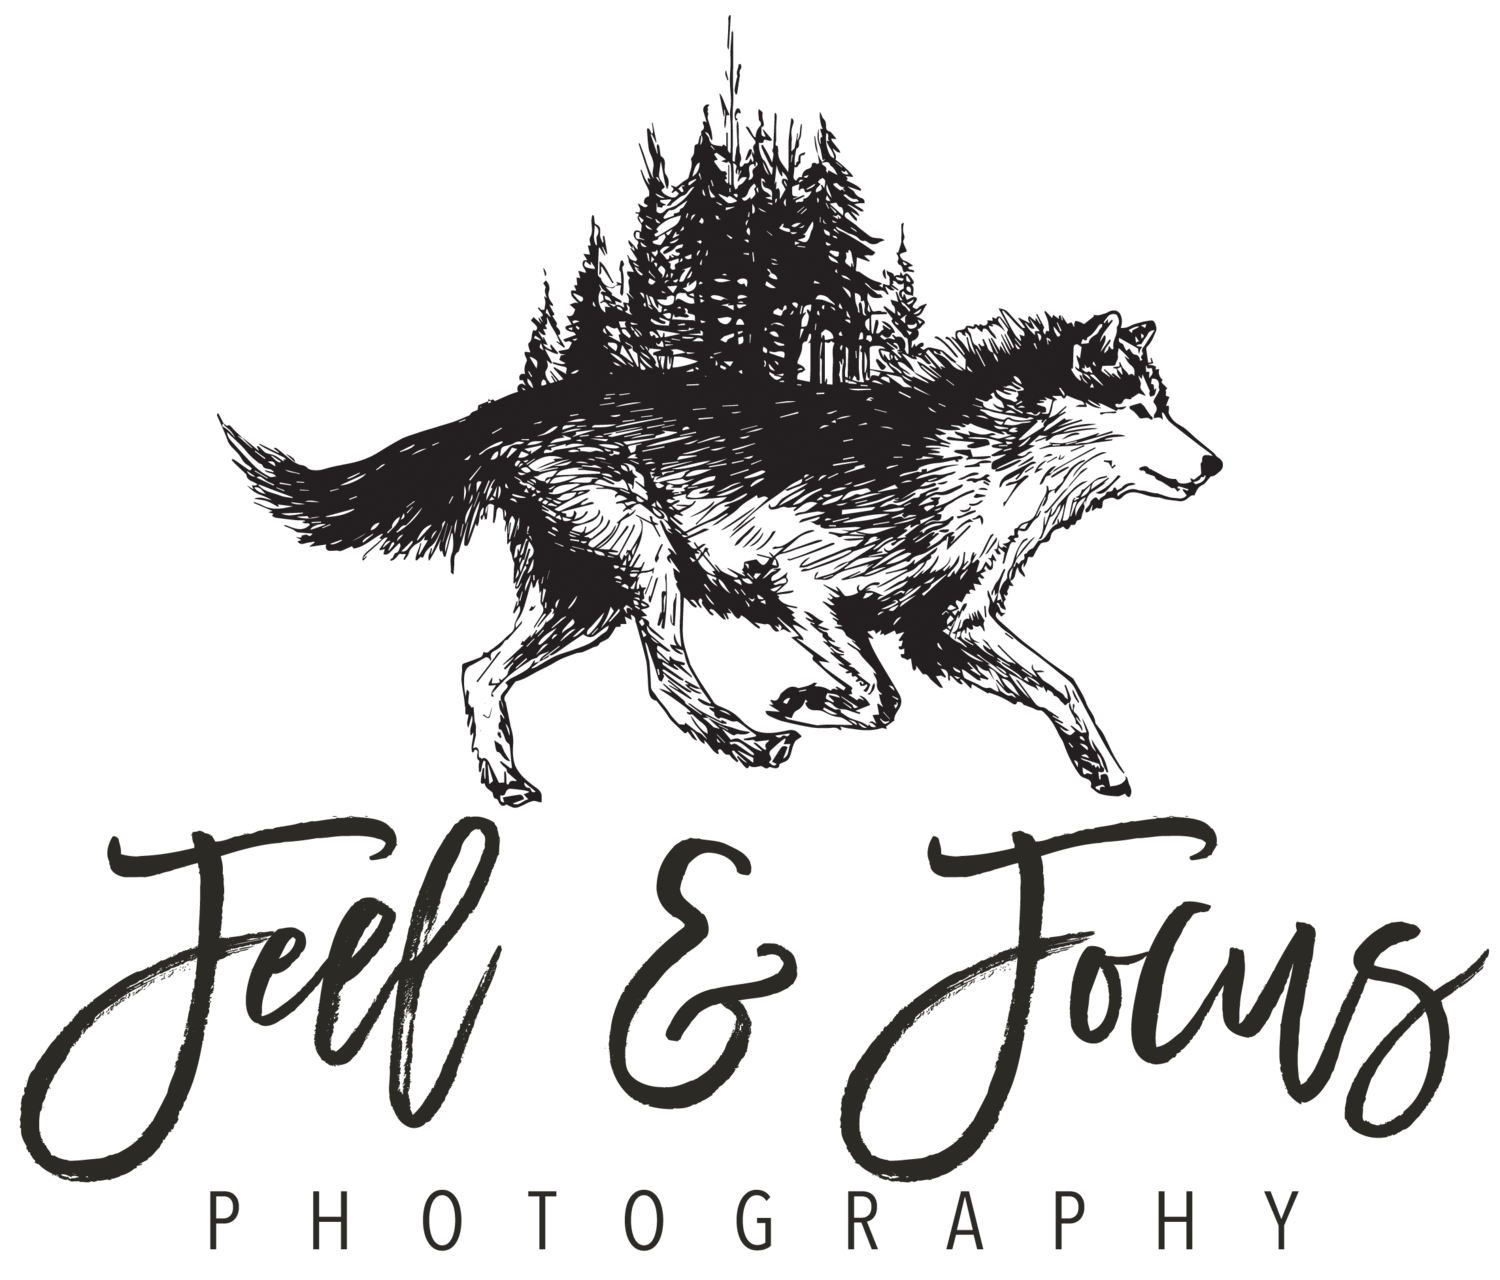 Feel & Focus Photography | Las Vegas Based Photographer